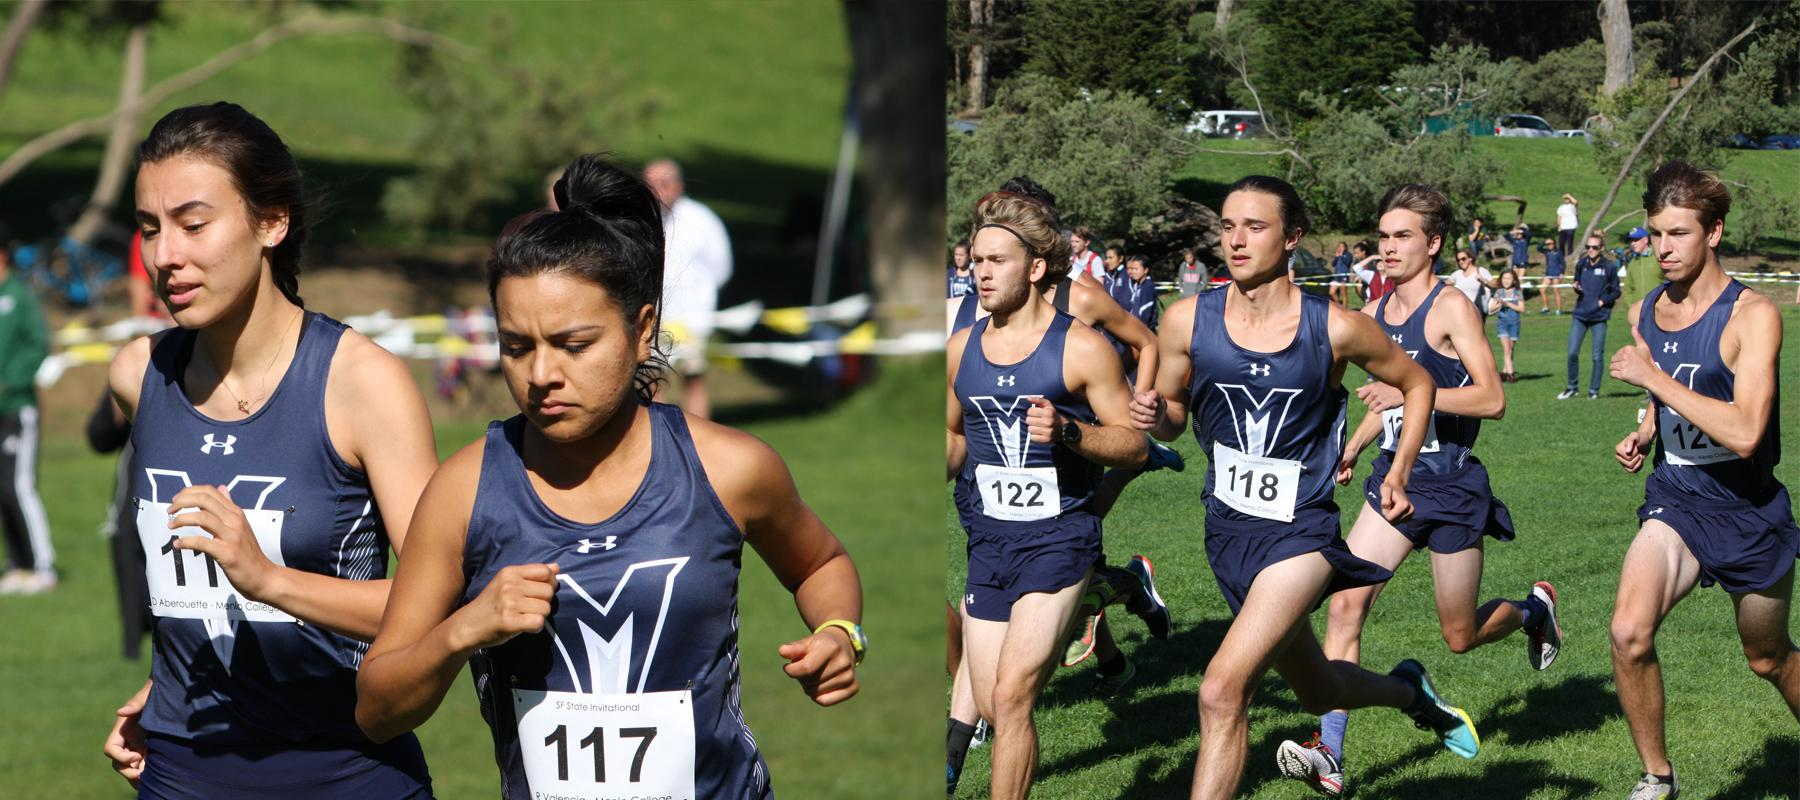 Boutin and Valencia Pace Oaks at SF State Invite